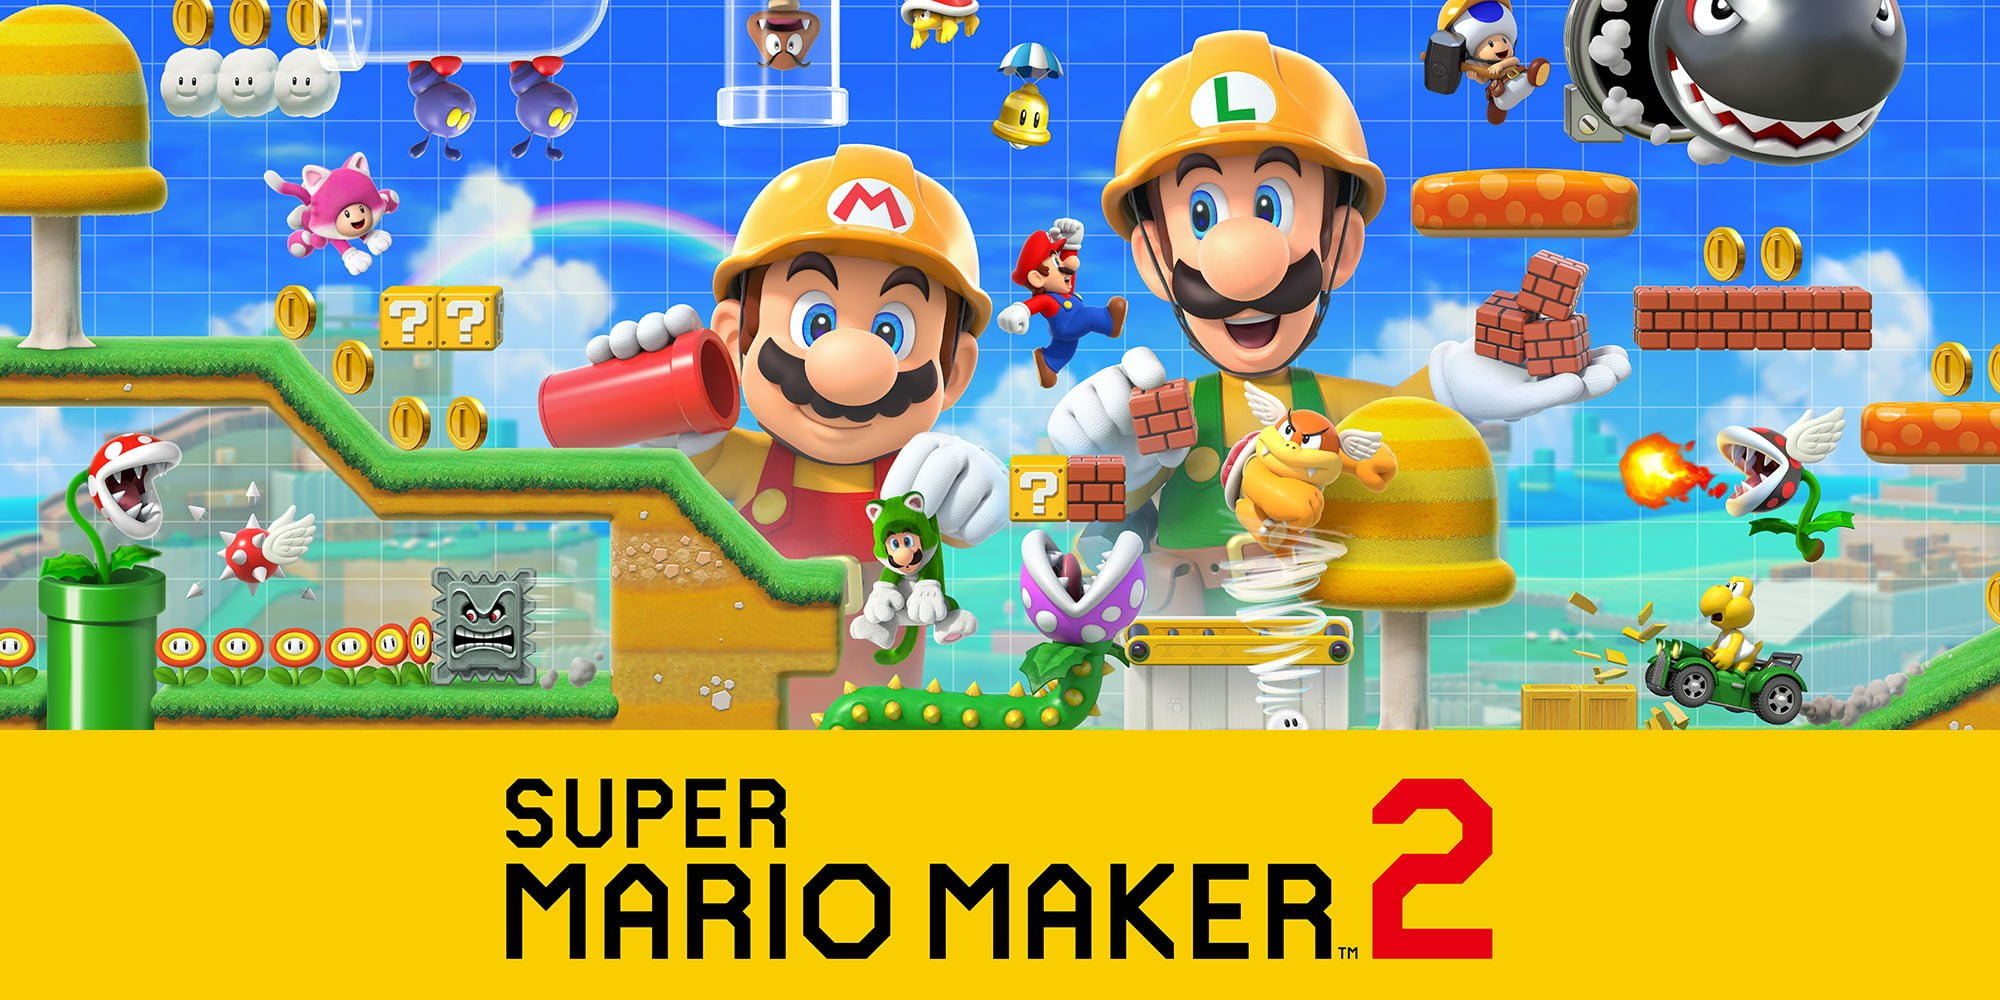 Super Mario Maker 2 Full Version Free Download · FrontLine Gaming